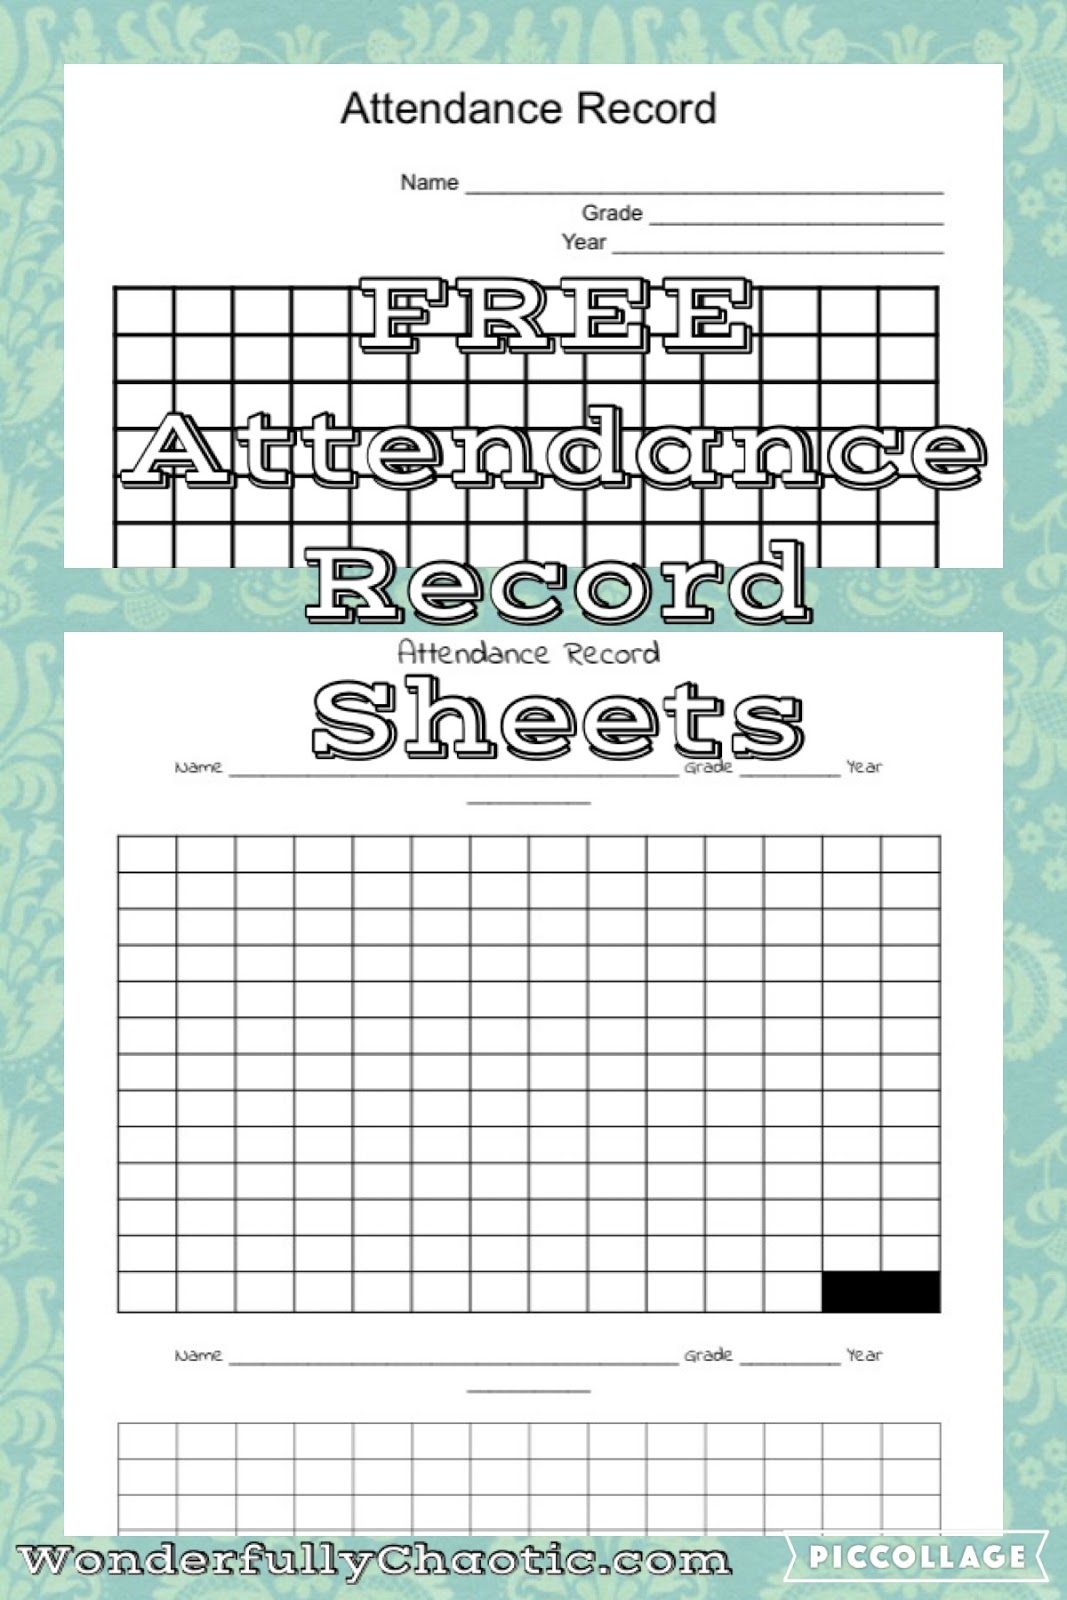 Peachy Free Homeschool Attendance Record Sheets Wonderfully Chaotic Download Free Architecture Designs Scobabritishbridgeorg